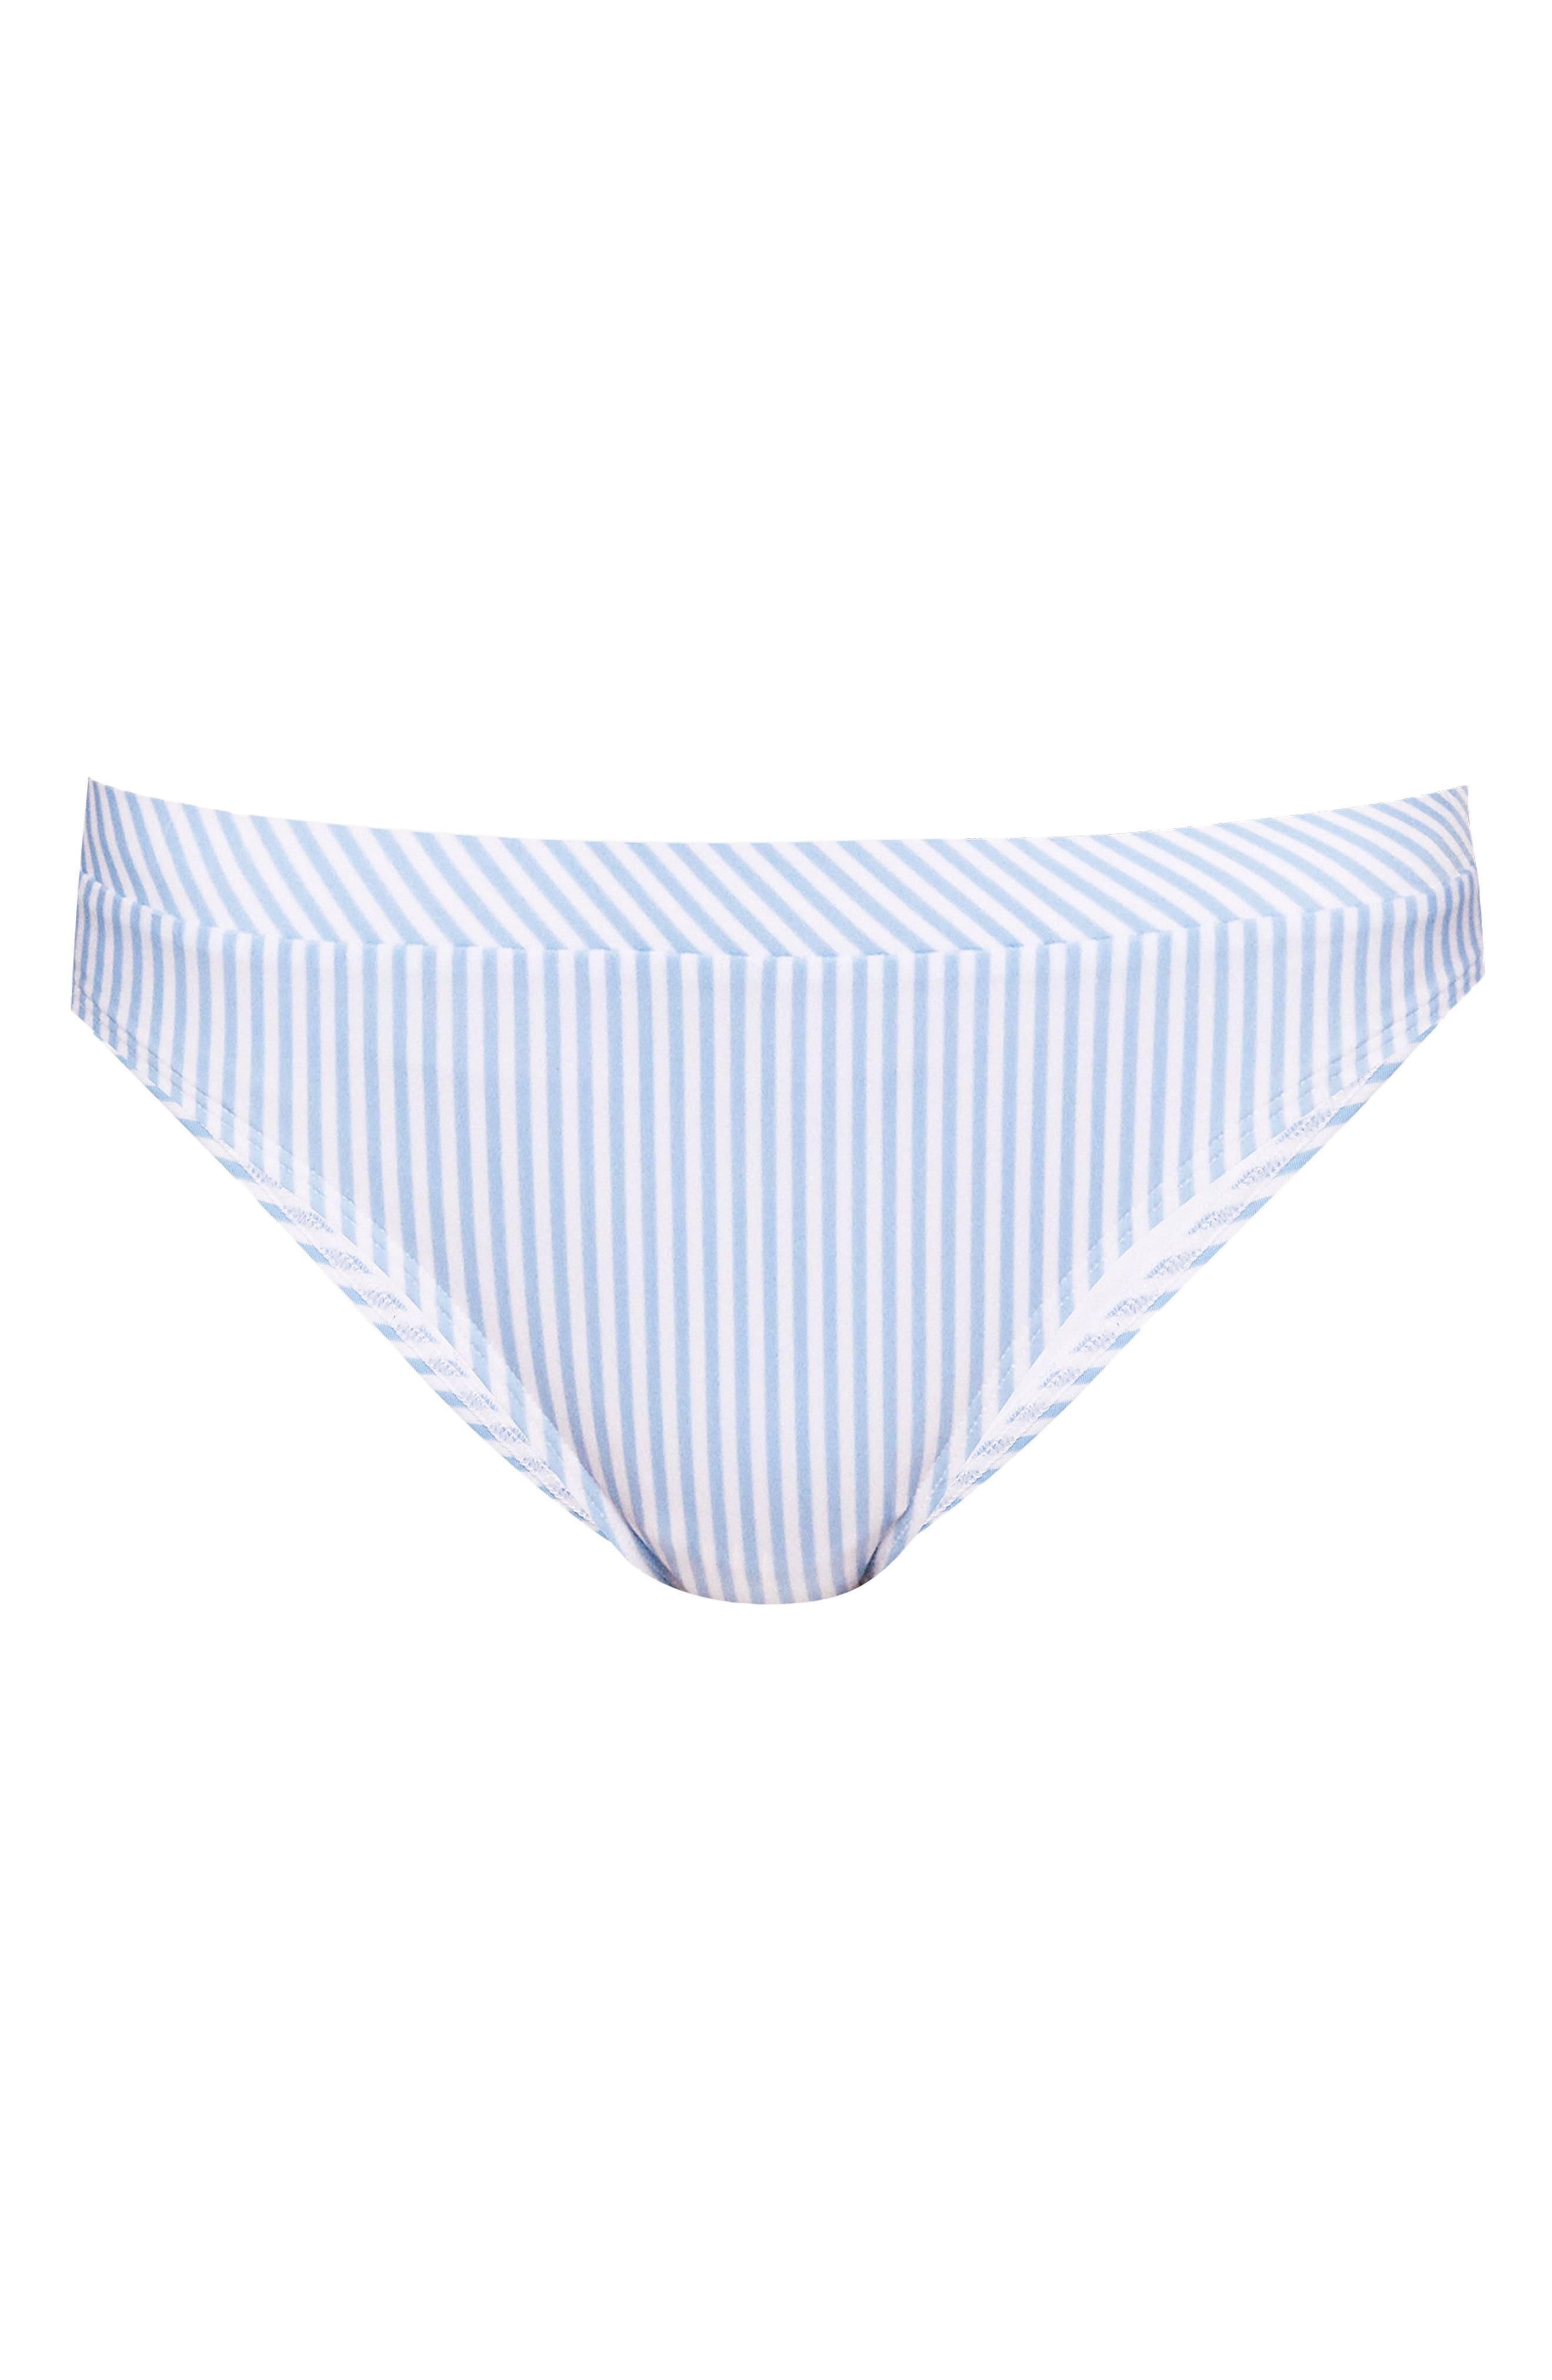 Stripe Bikini Bottoms,                             Alternate thumbnail 6, color,                             PALE BLUE